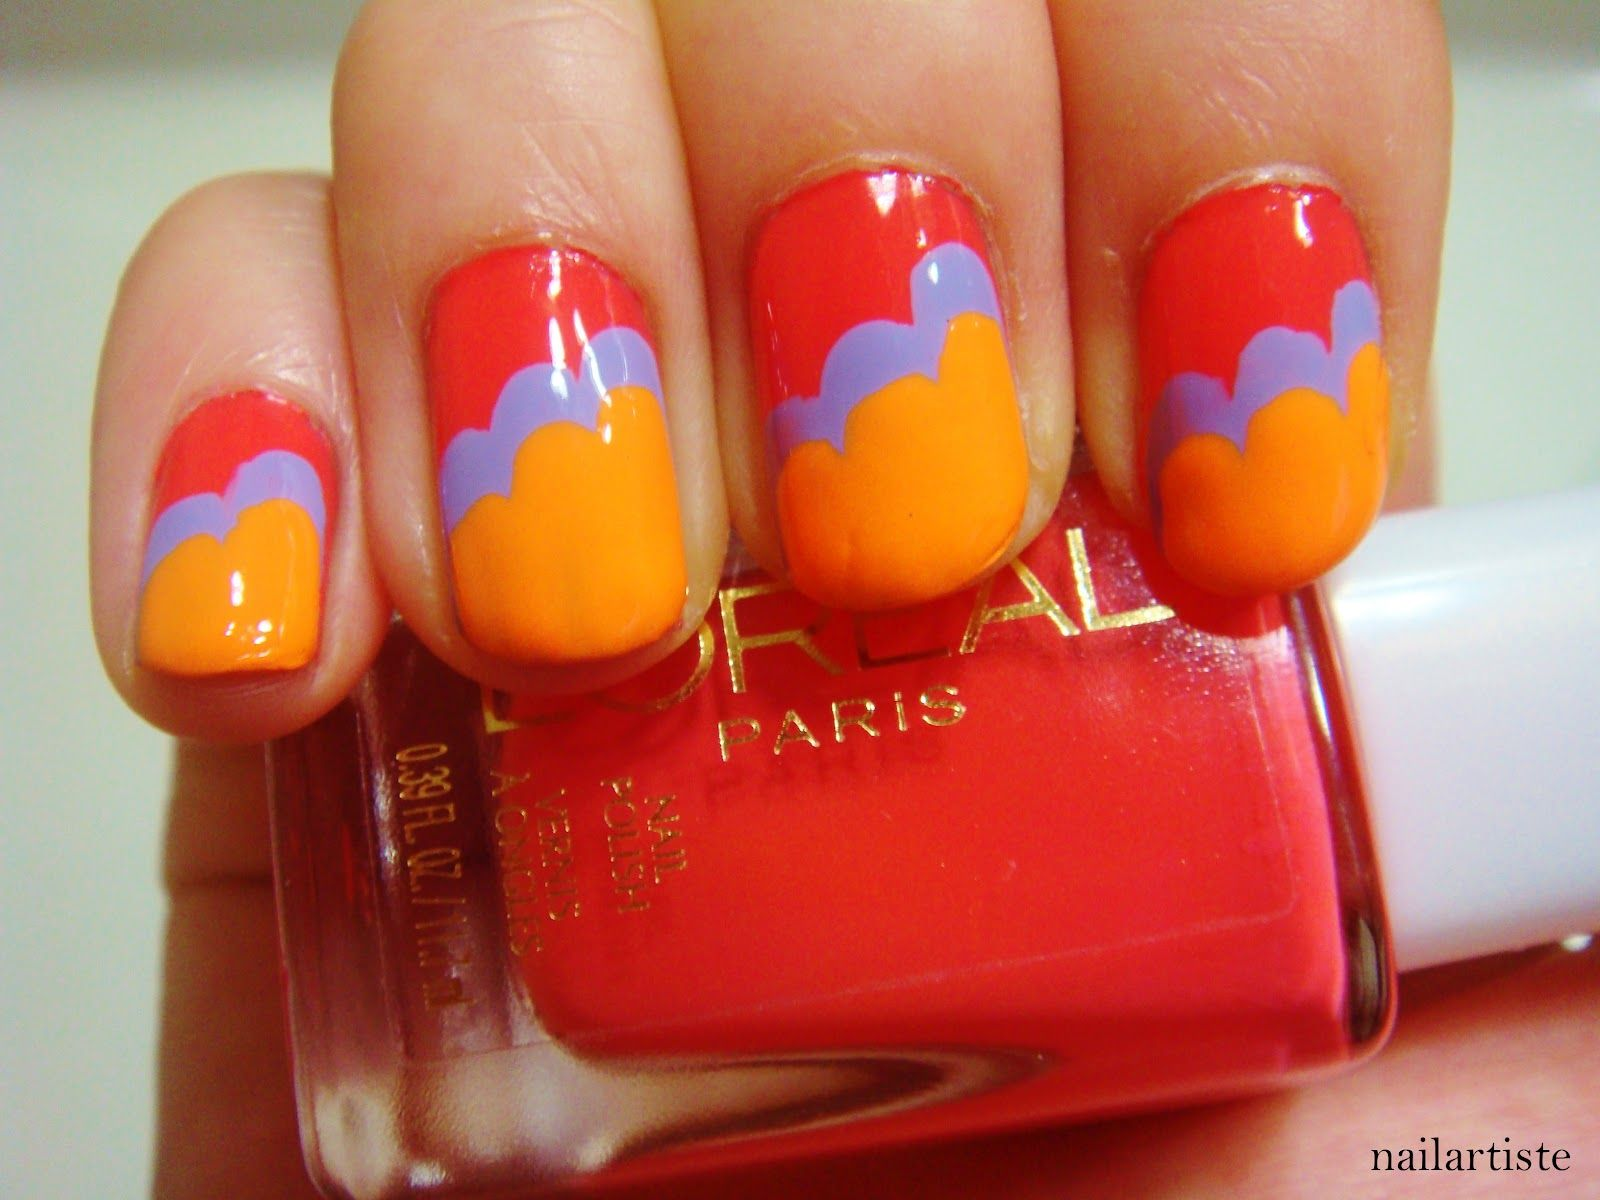 The nail artiste nail art happy clouds à la nailside could do